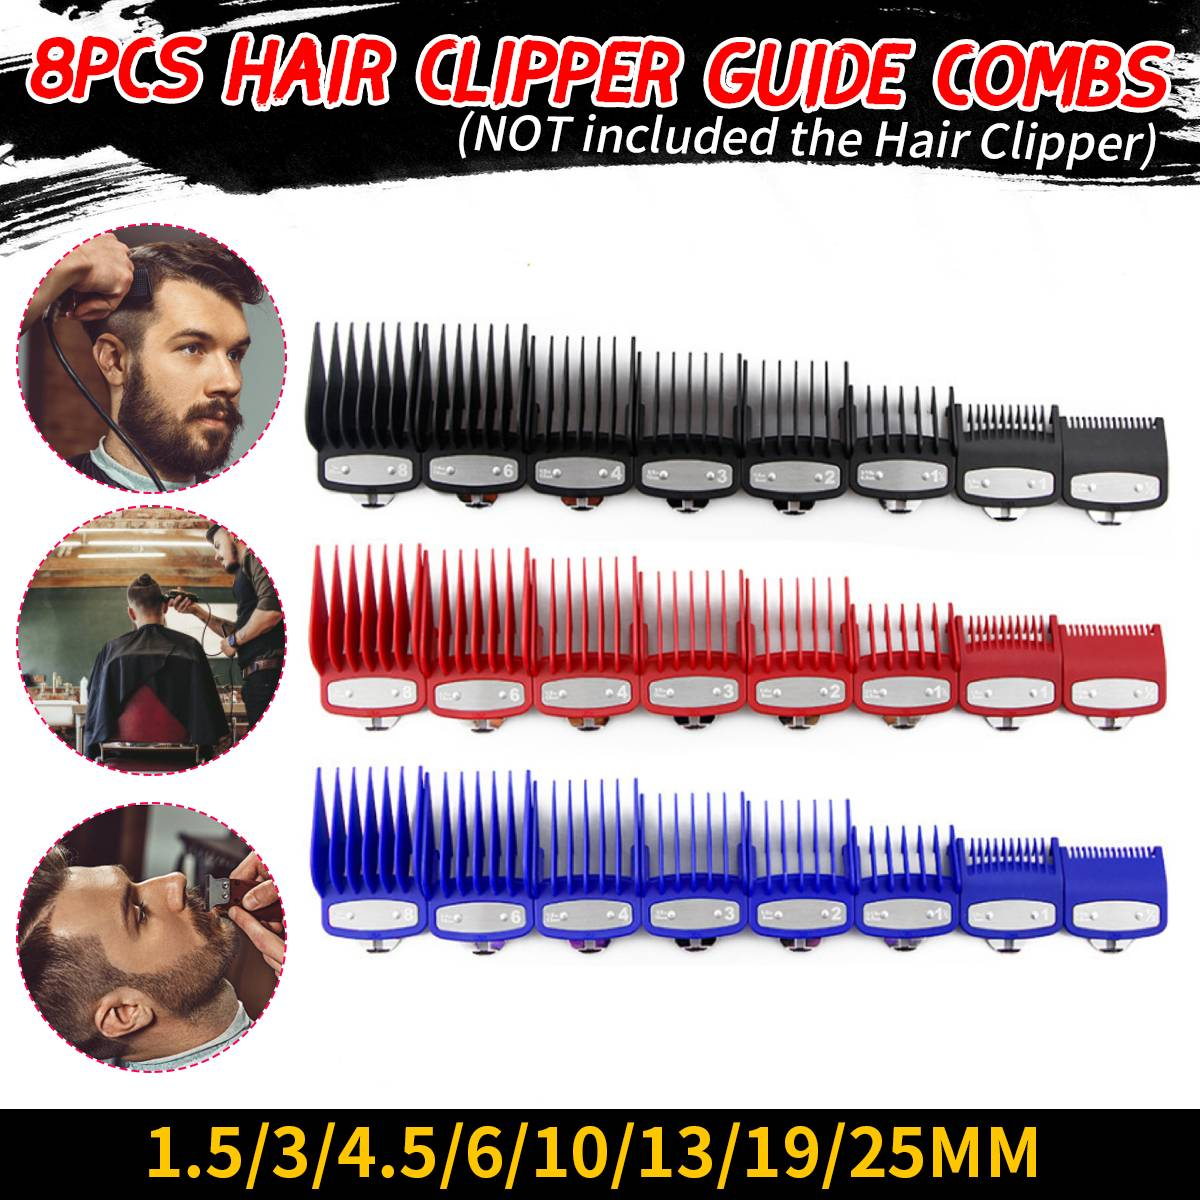 8Pcs Hair Clipper Cutting Guide Combs Set With Metal Clip Replacement Tools For WAHL Hair Cutting Machine